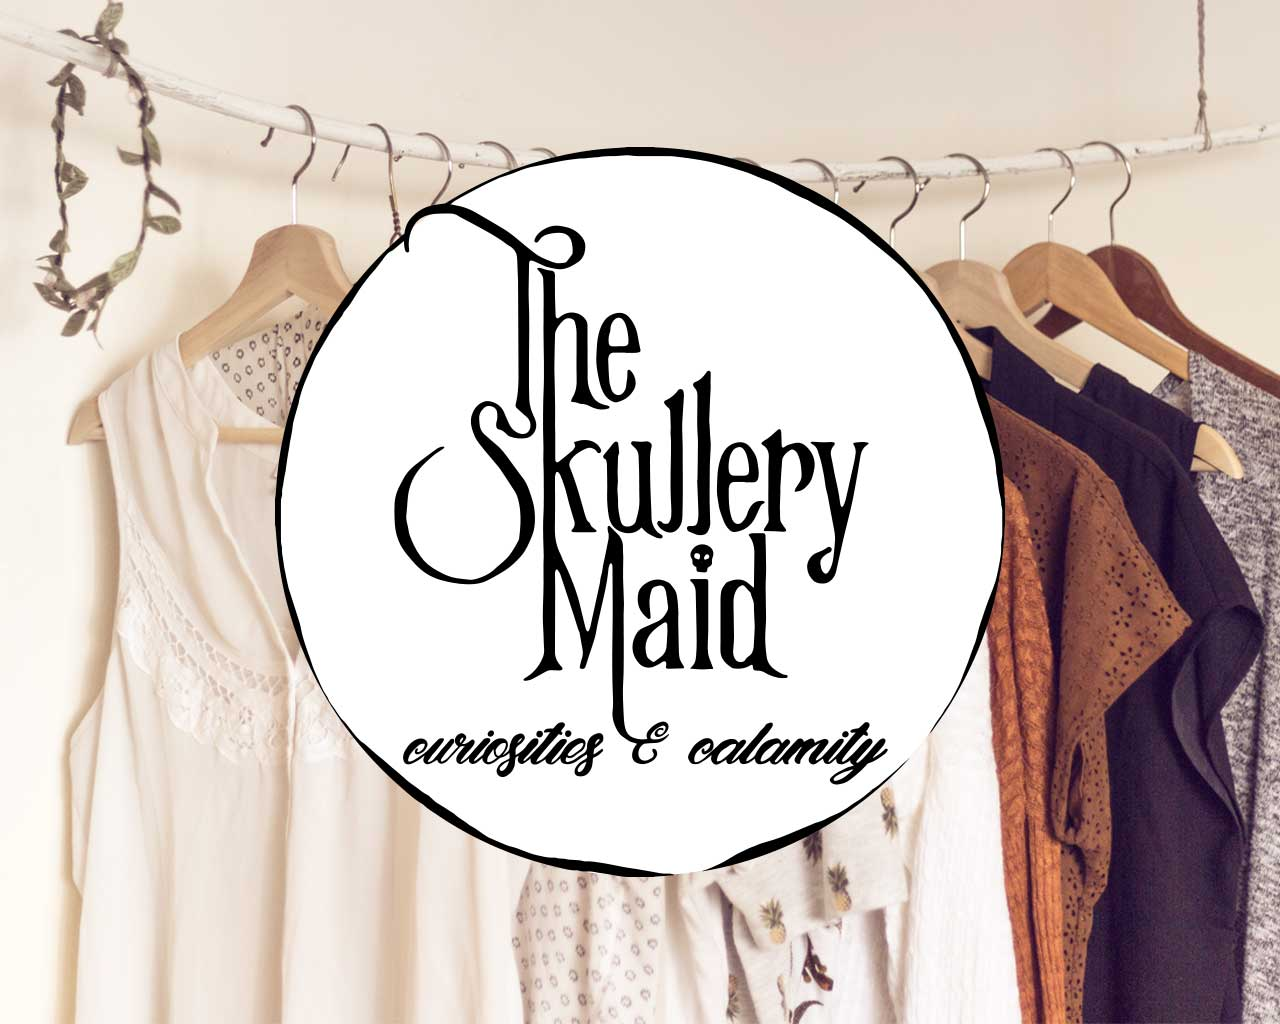 The Skullery Maid